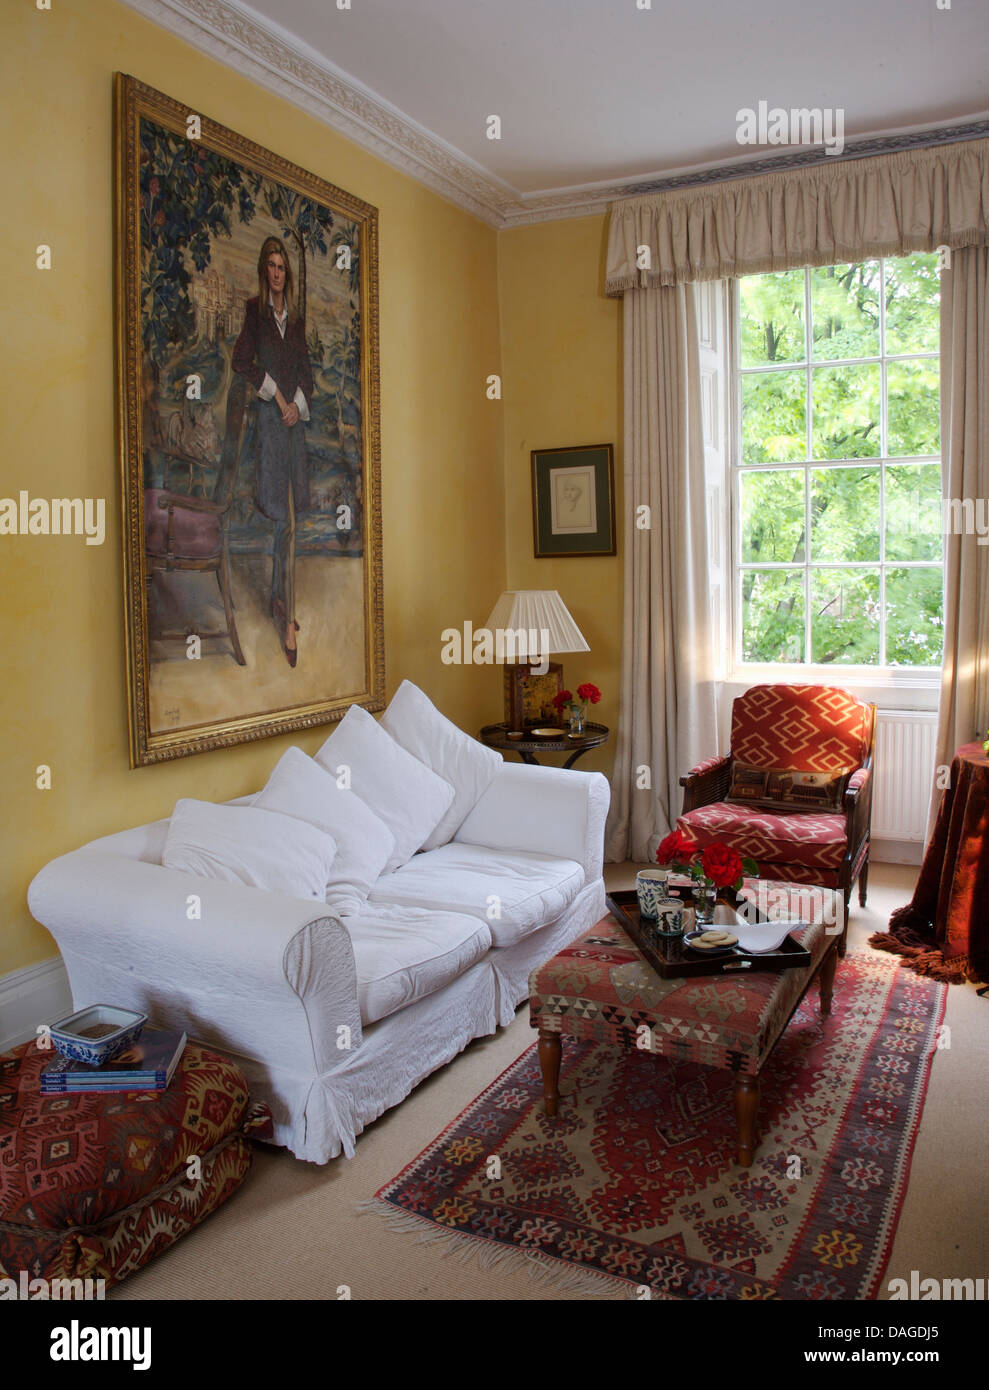 Large Painting Above Sofa With White Loose Cover In Town House Drawing Room  With Kelim Upholstered Stool On Small Rug